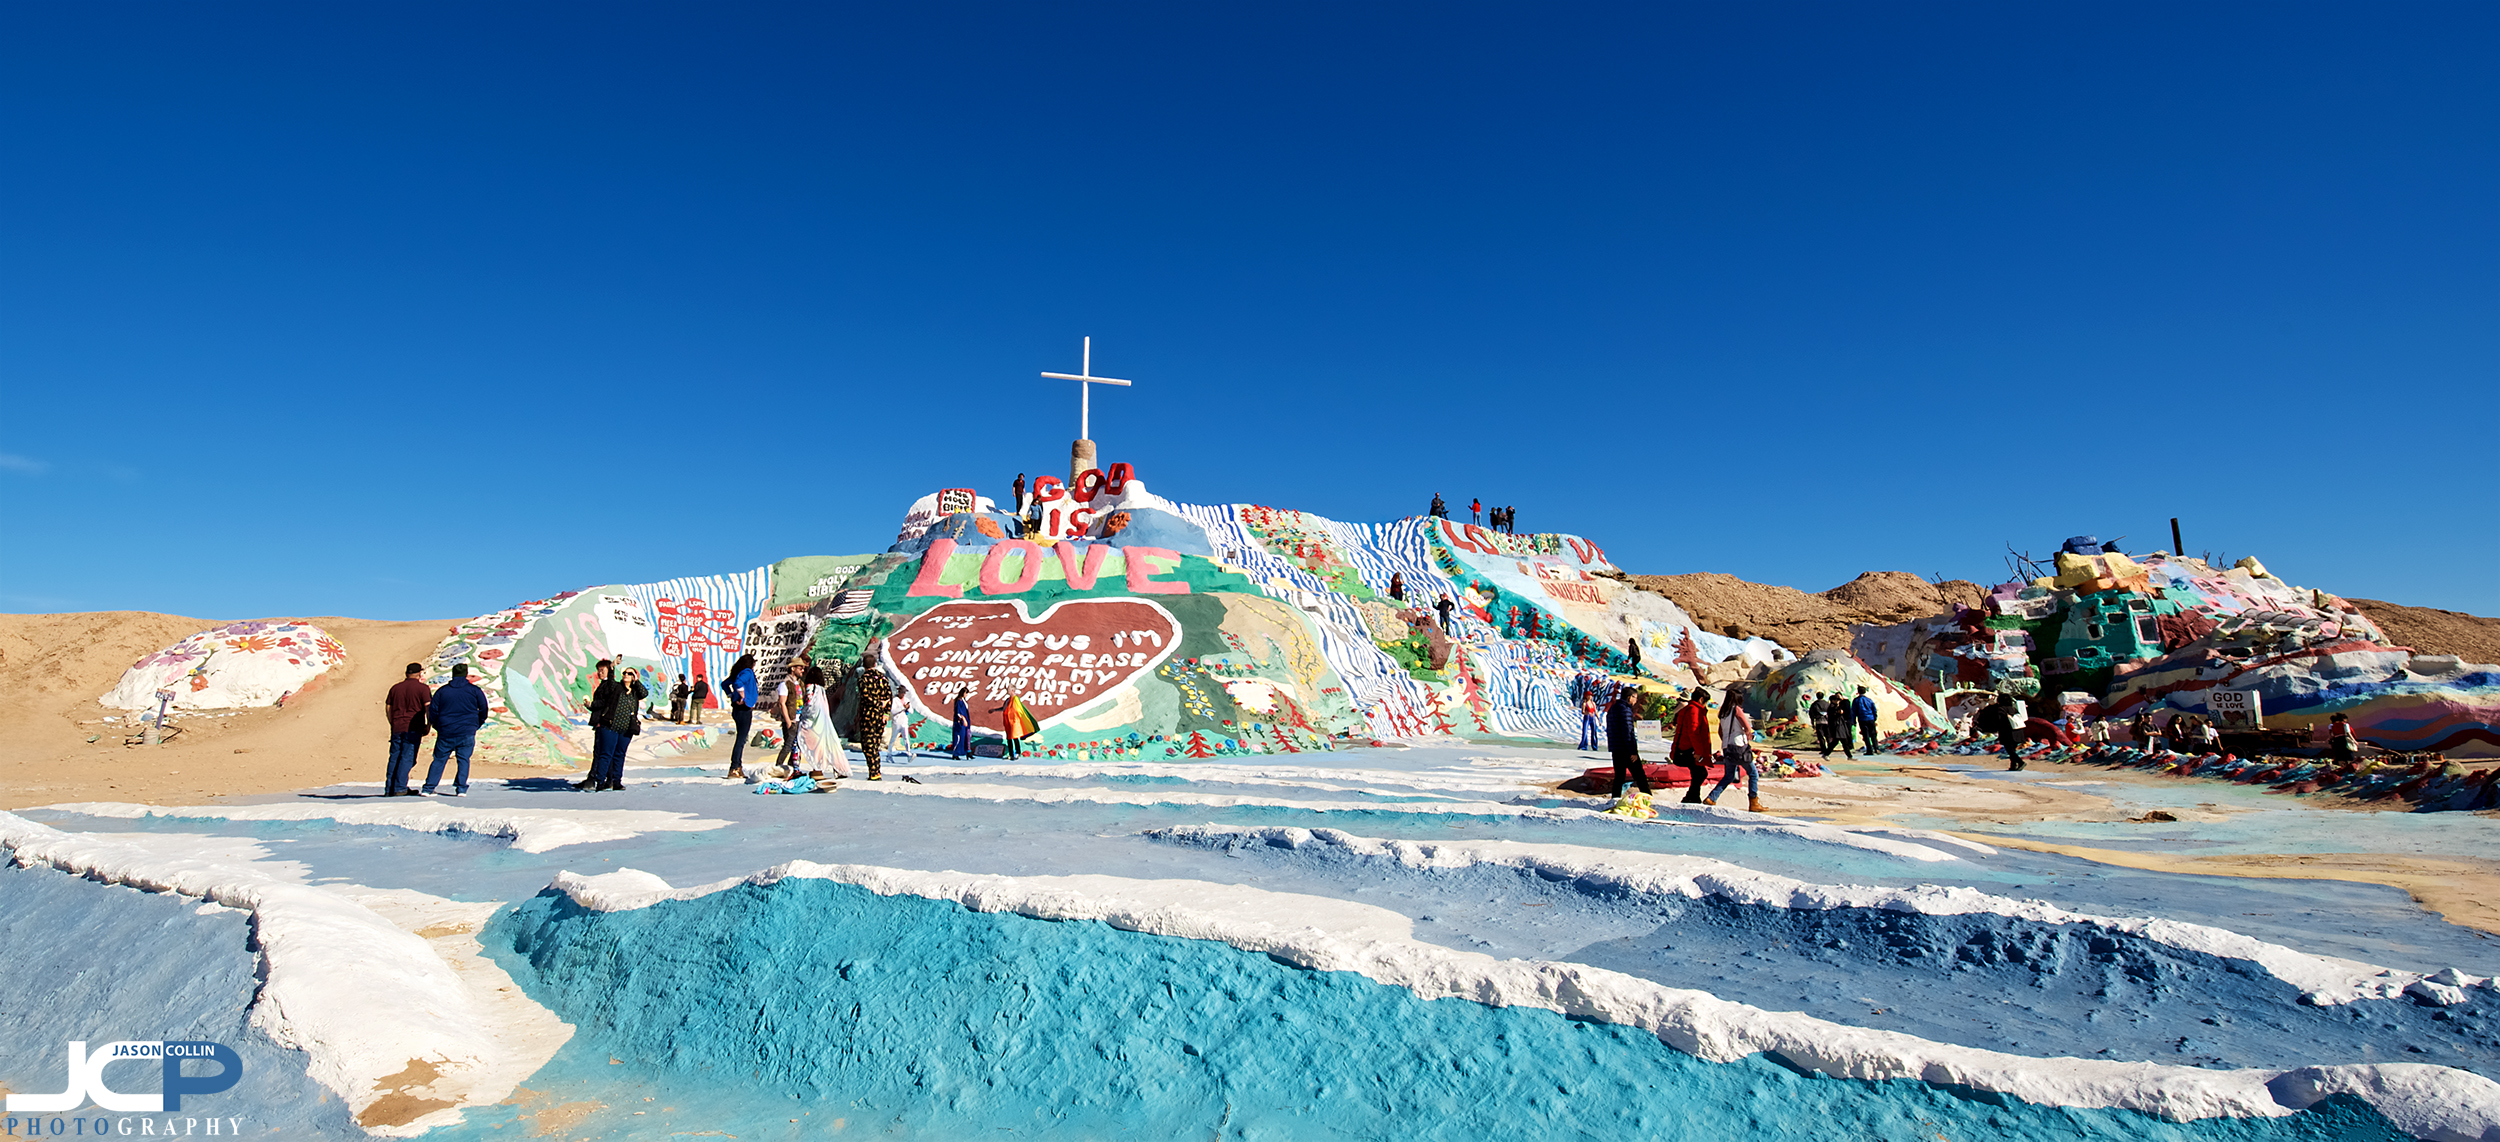 Not a Dr. Seuss monument, this is in fact Salvation Mountain in Slab City, California